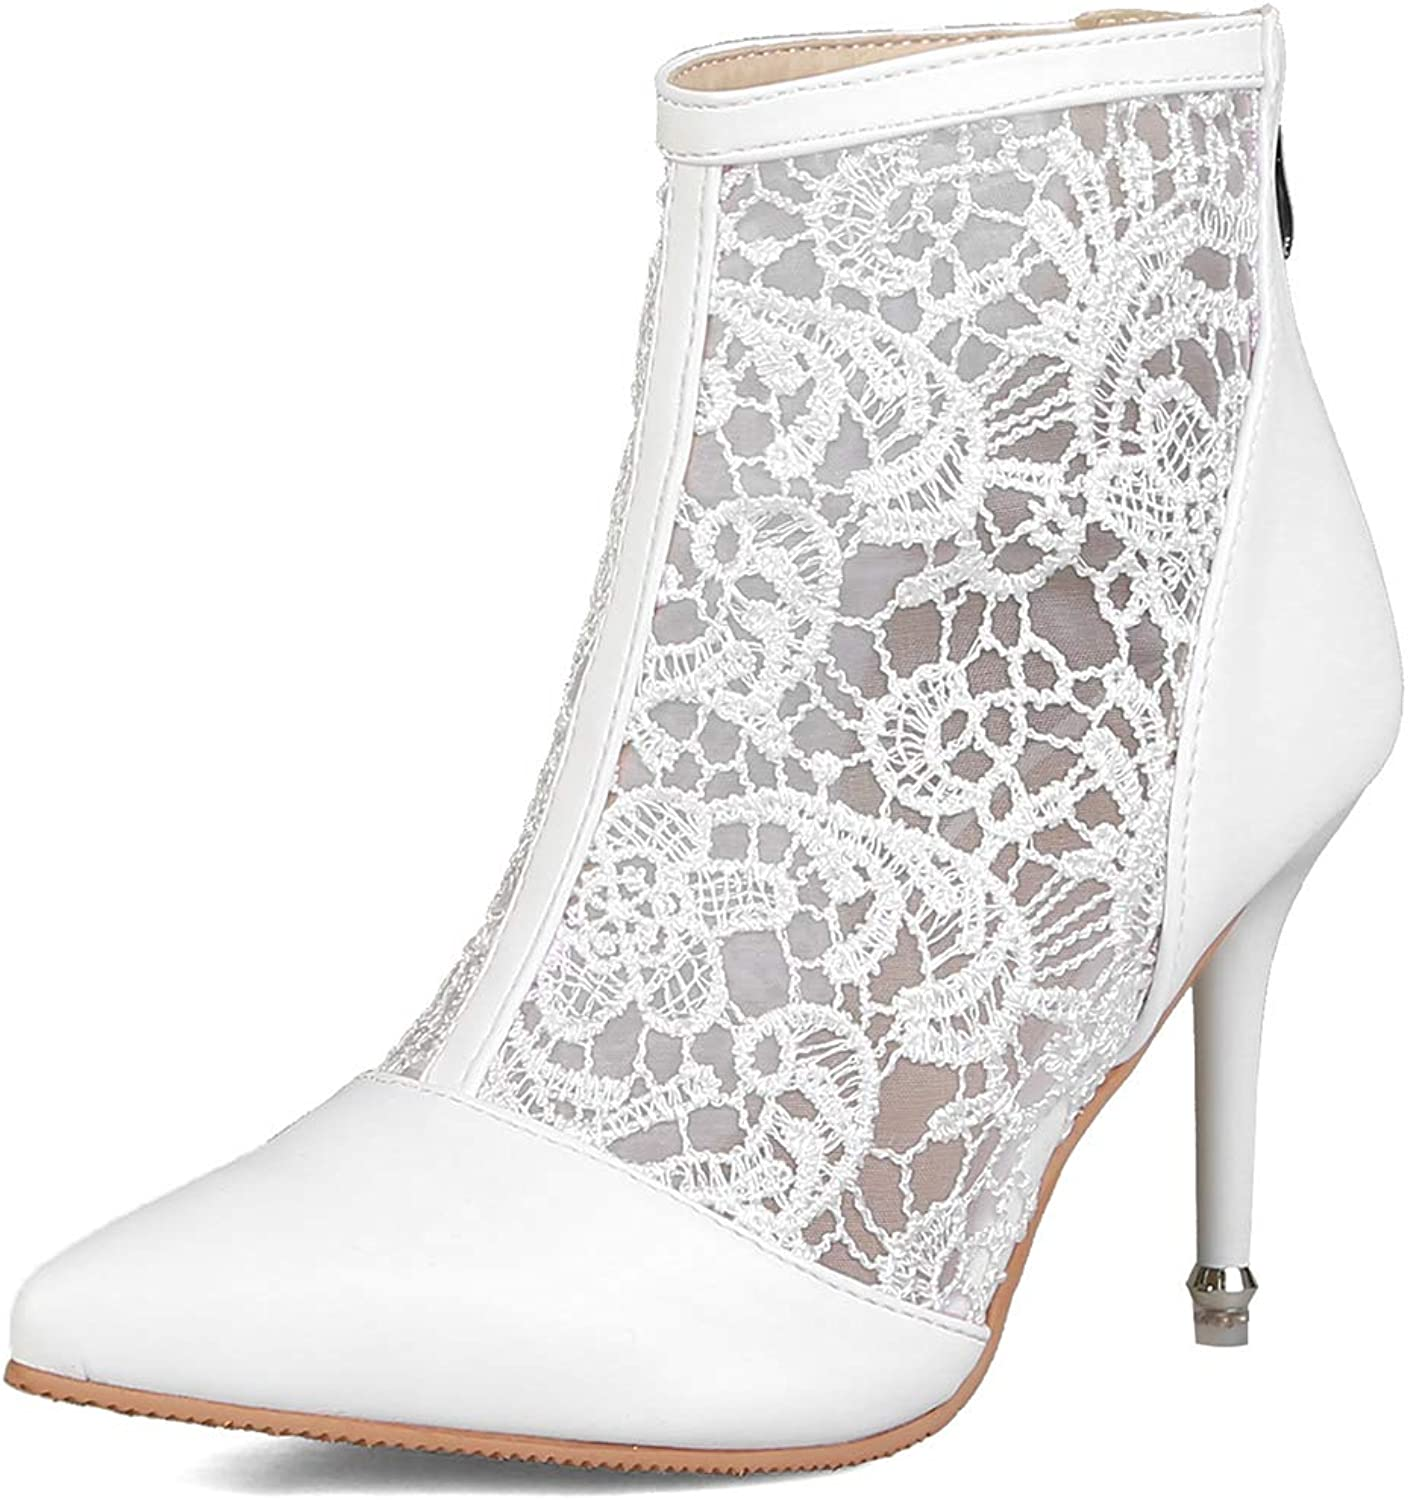 DoraTasia Women's Pretty Lace Flowers Pointed Toes High Heels Ankle Boots